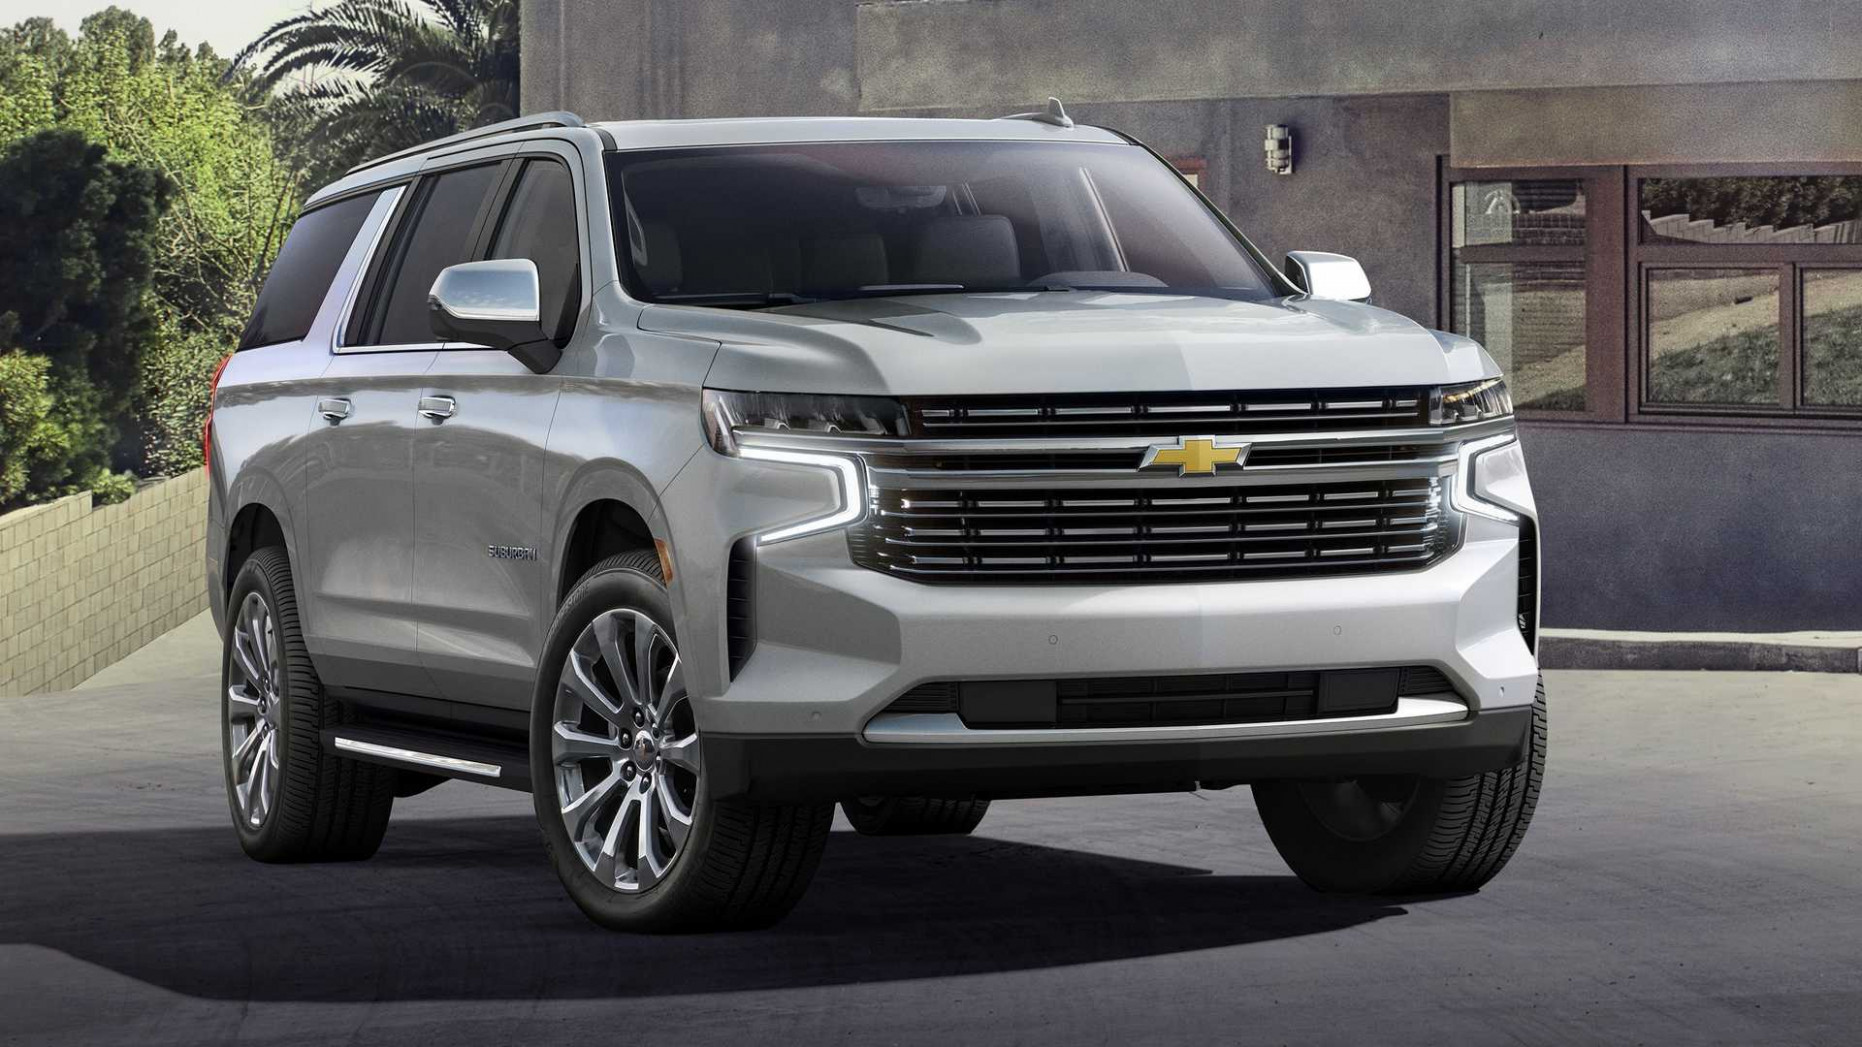 Pricing When Will The 2022 Chevrolet Suburban Be Released